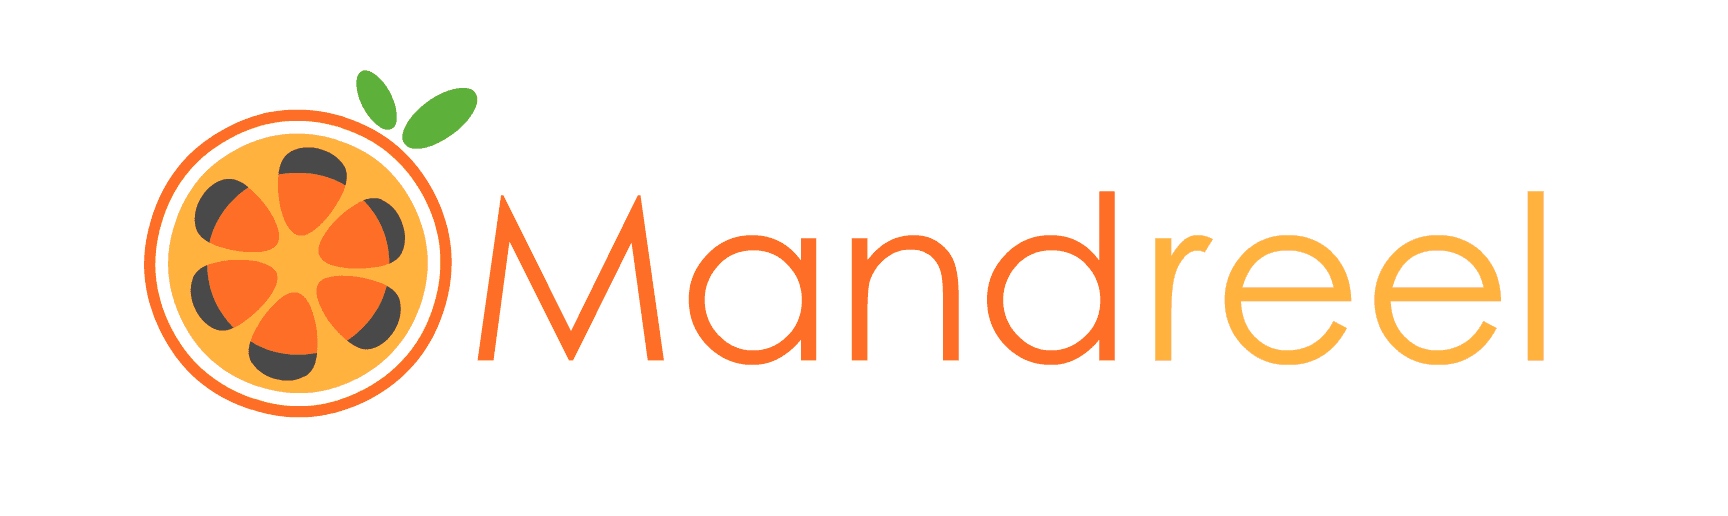 Software Archives - Mandreel